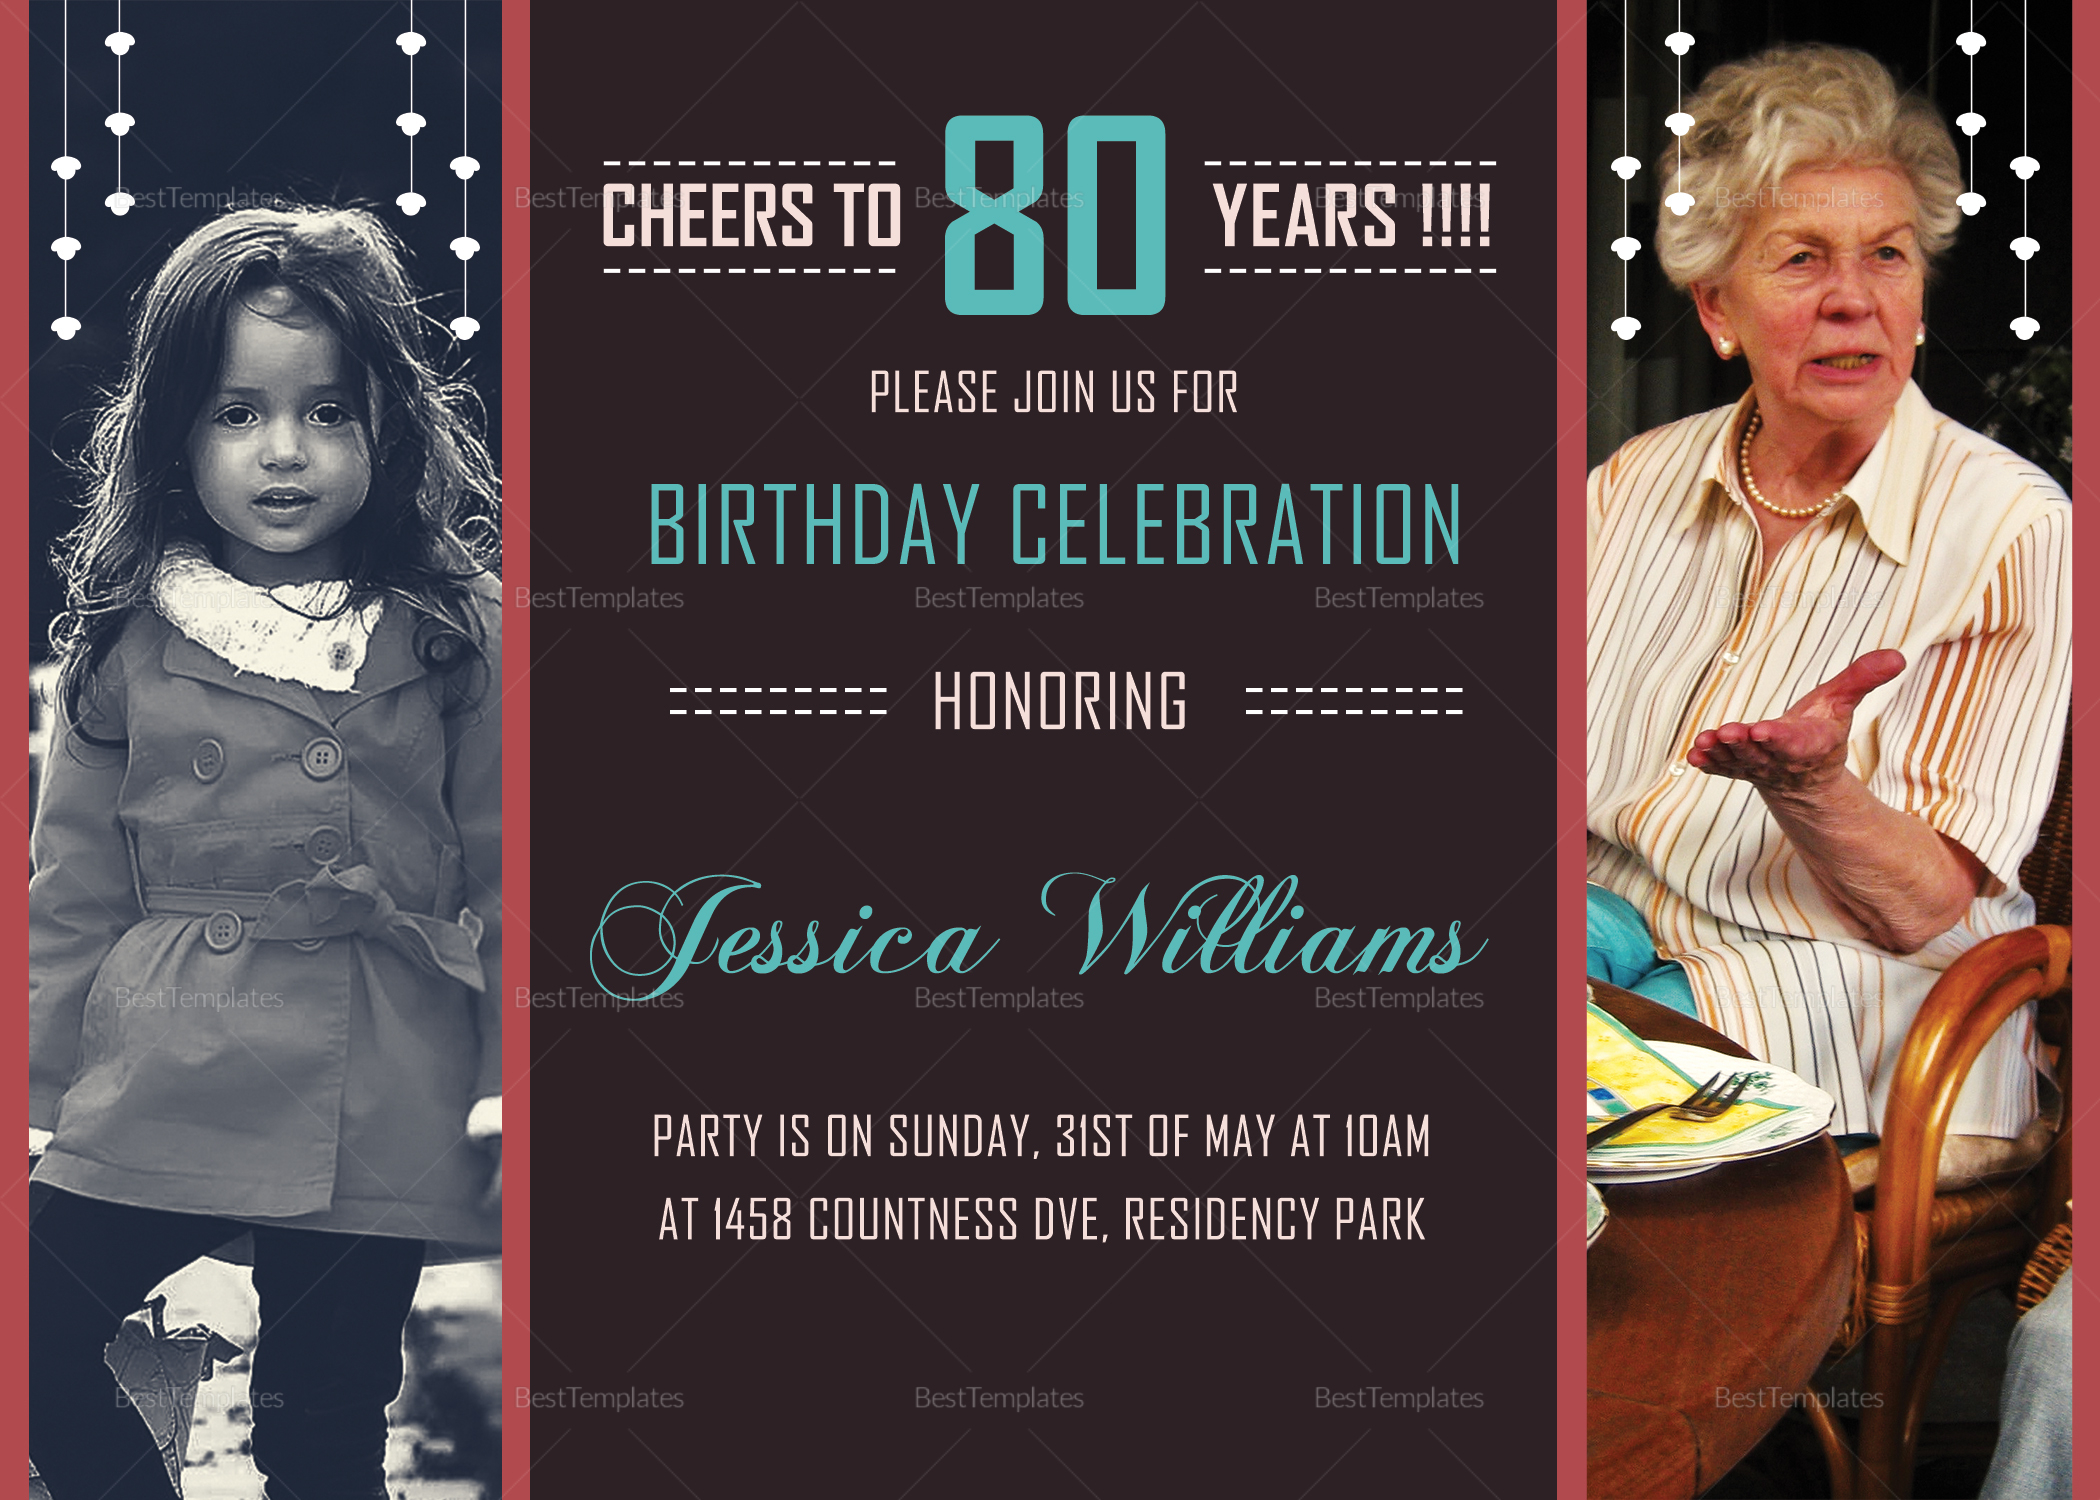 80TH Birthday Invitation Design Template